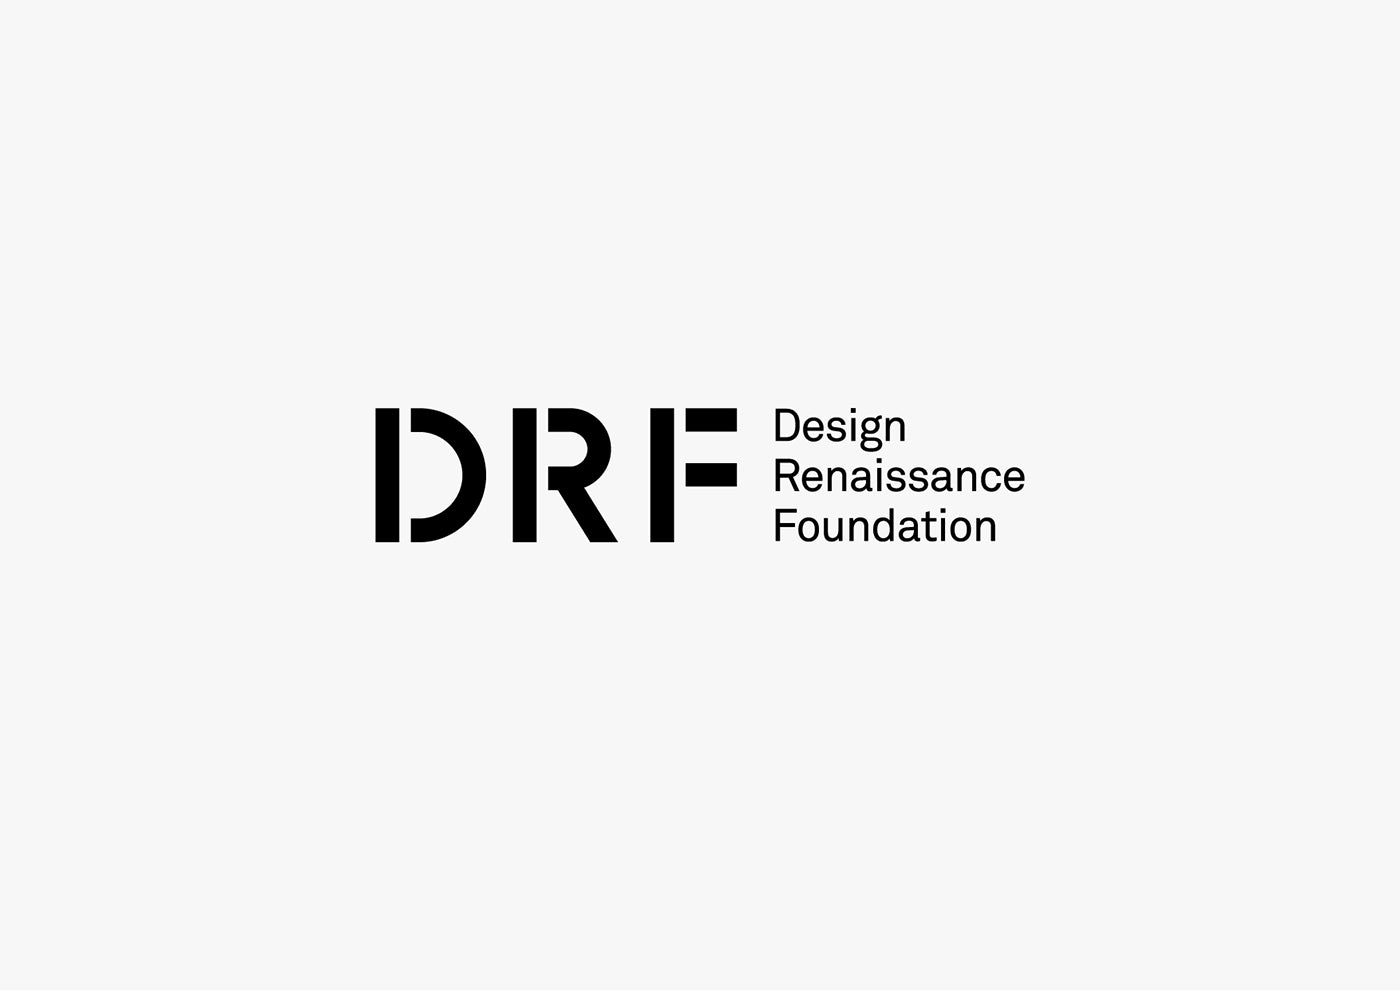 ALAND: Design Renaissance Foundation